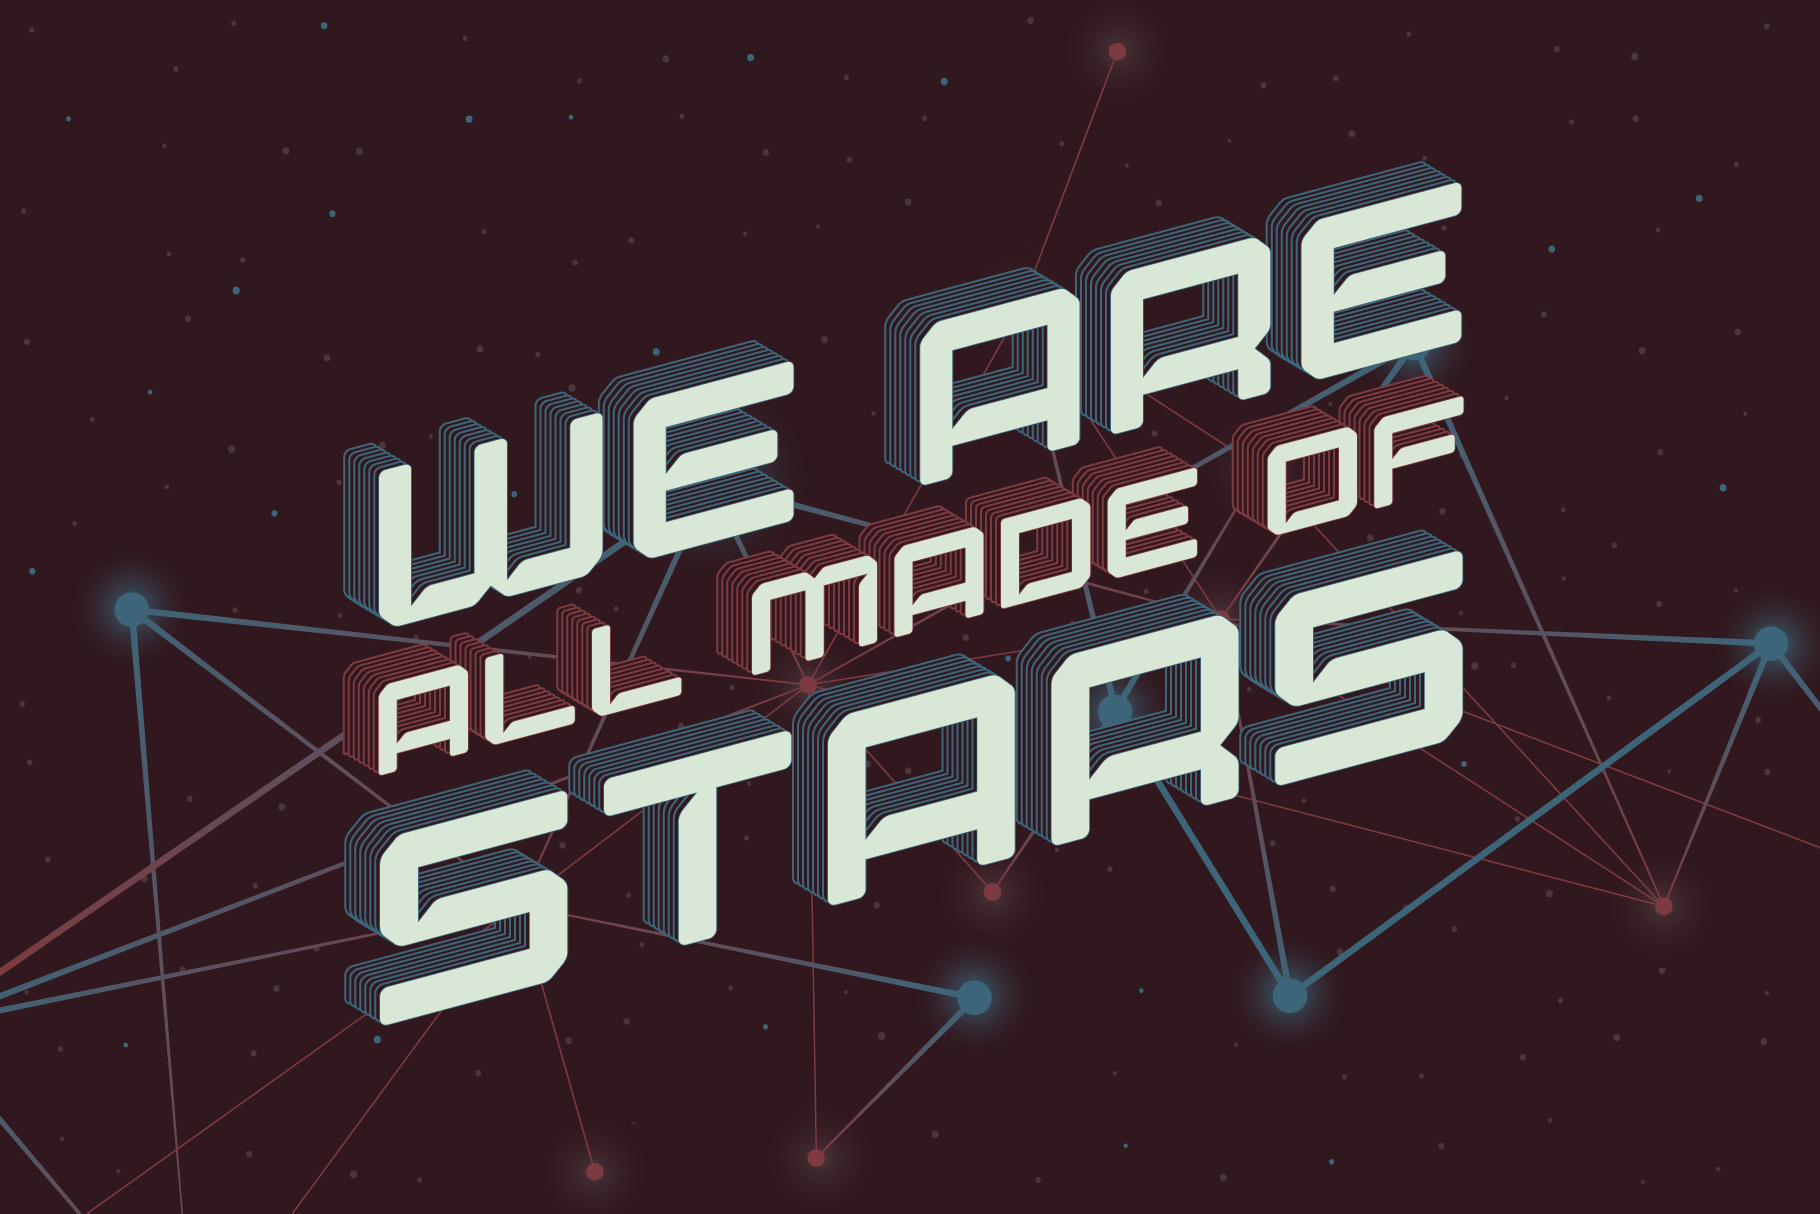 Lost in space. Futuristic typeface example image 4